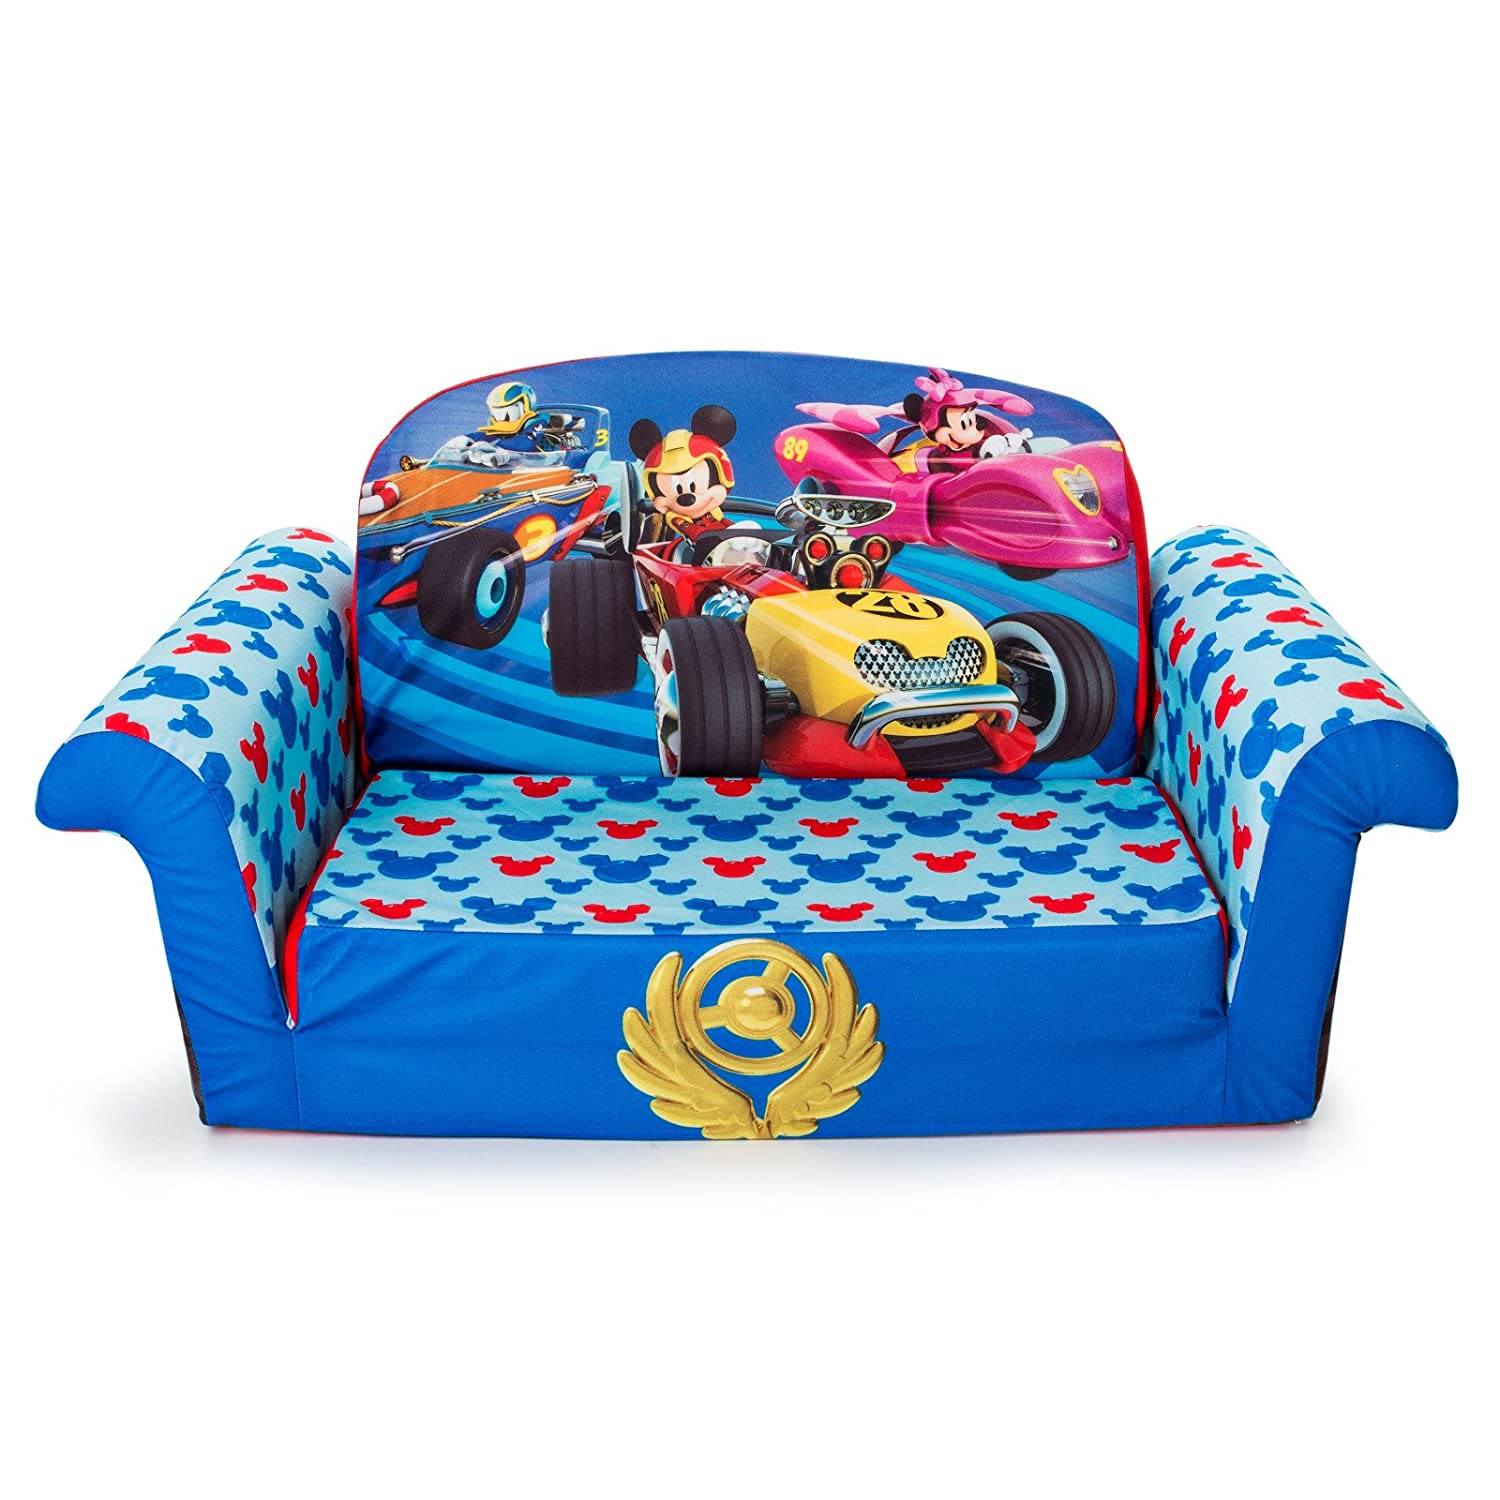 Remarkable Marshmallow Furniture Childrens 2 In 1 Flip Open Foam Sofa Disney Mickey Mouse Roadsters Flip Open Sofa Colors May Vary Download Free Architecture Designs Scobabritishbridgeorg